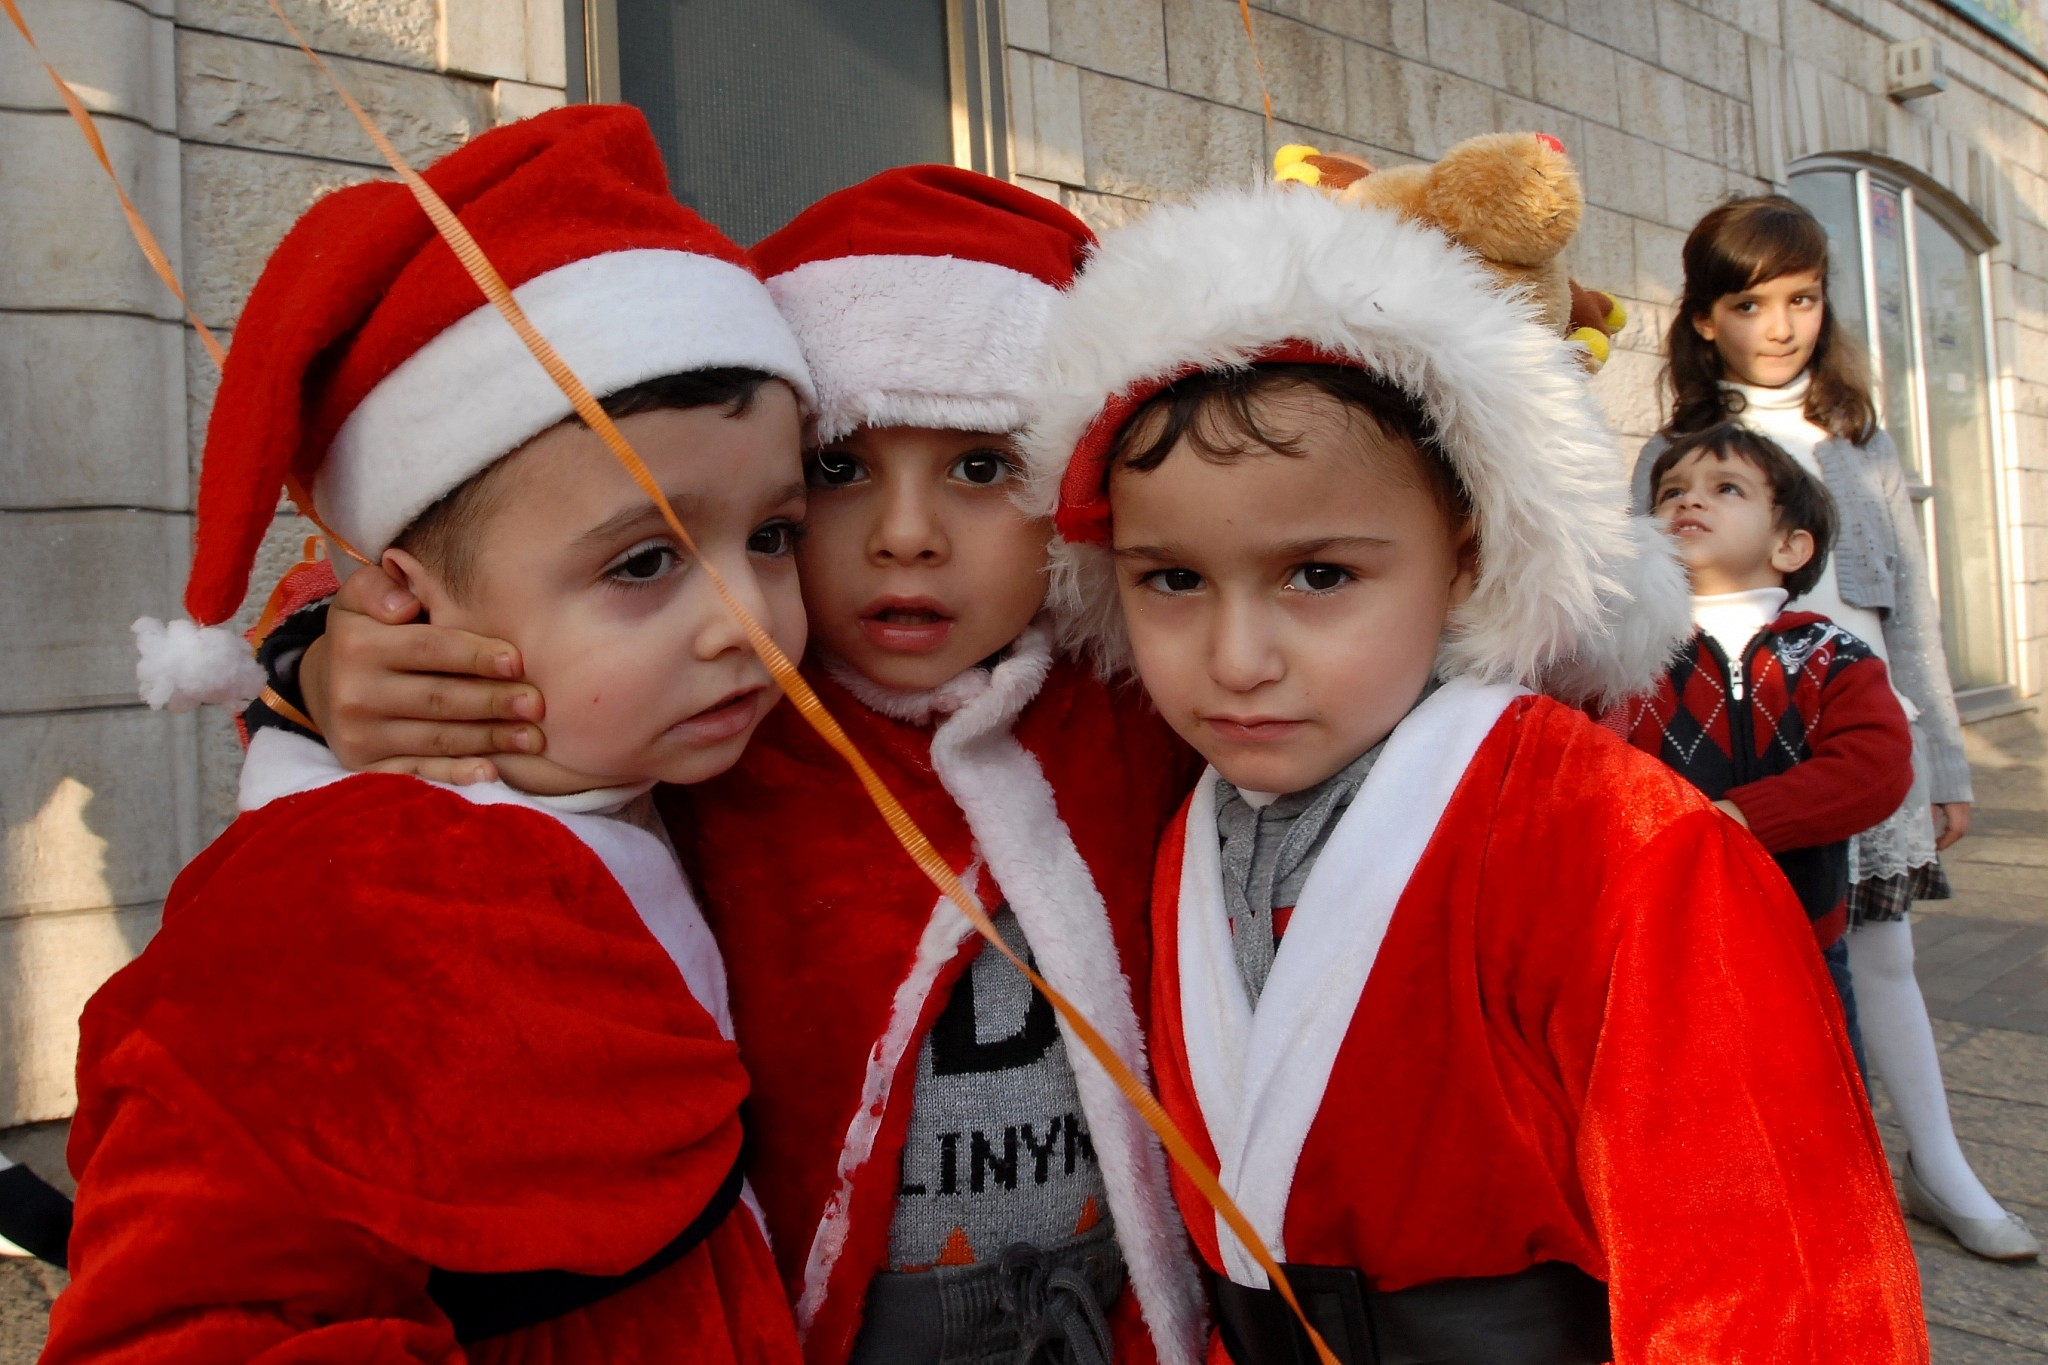 Nazareth's Muslim Mayor Cancels Christmas